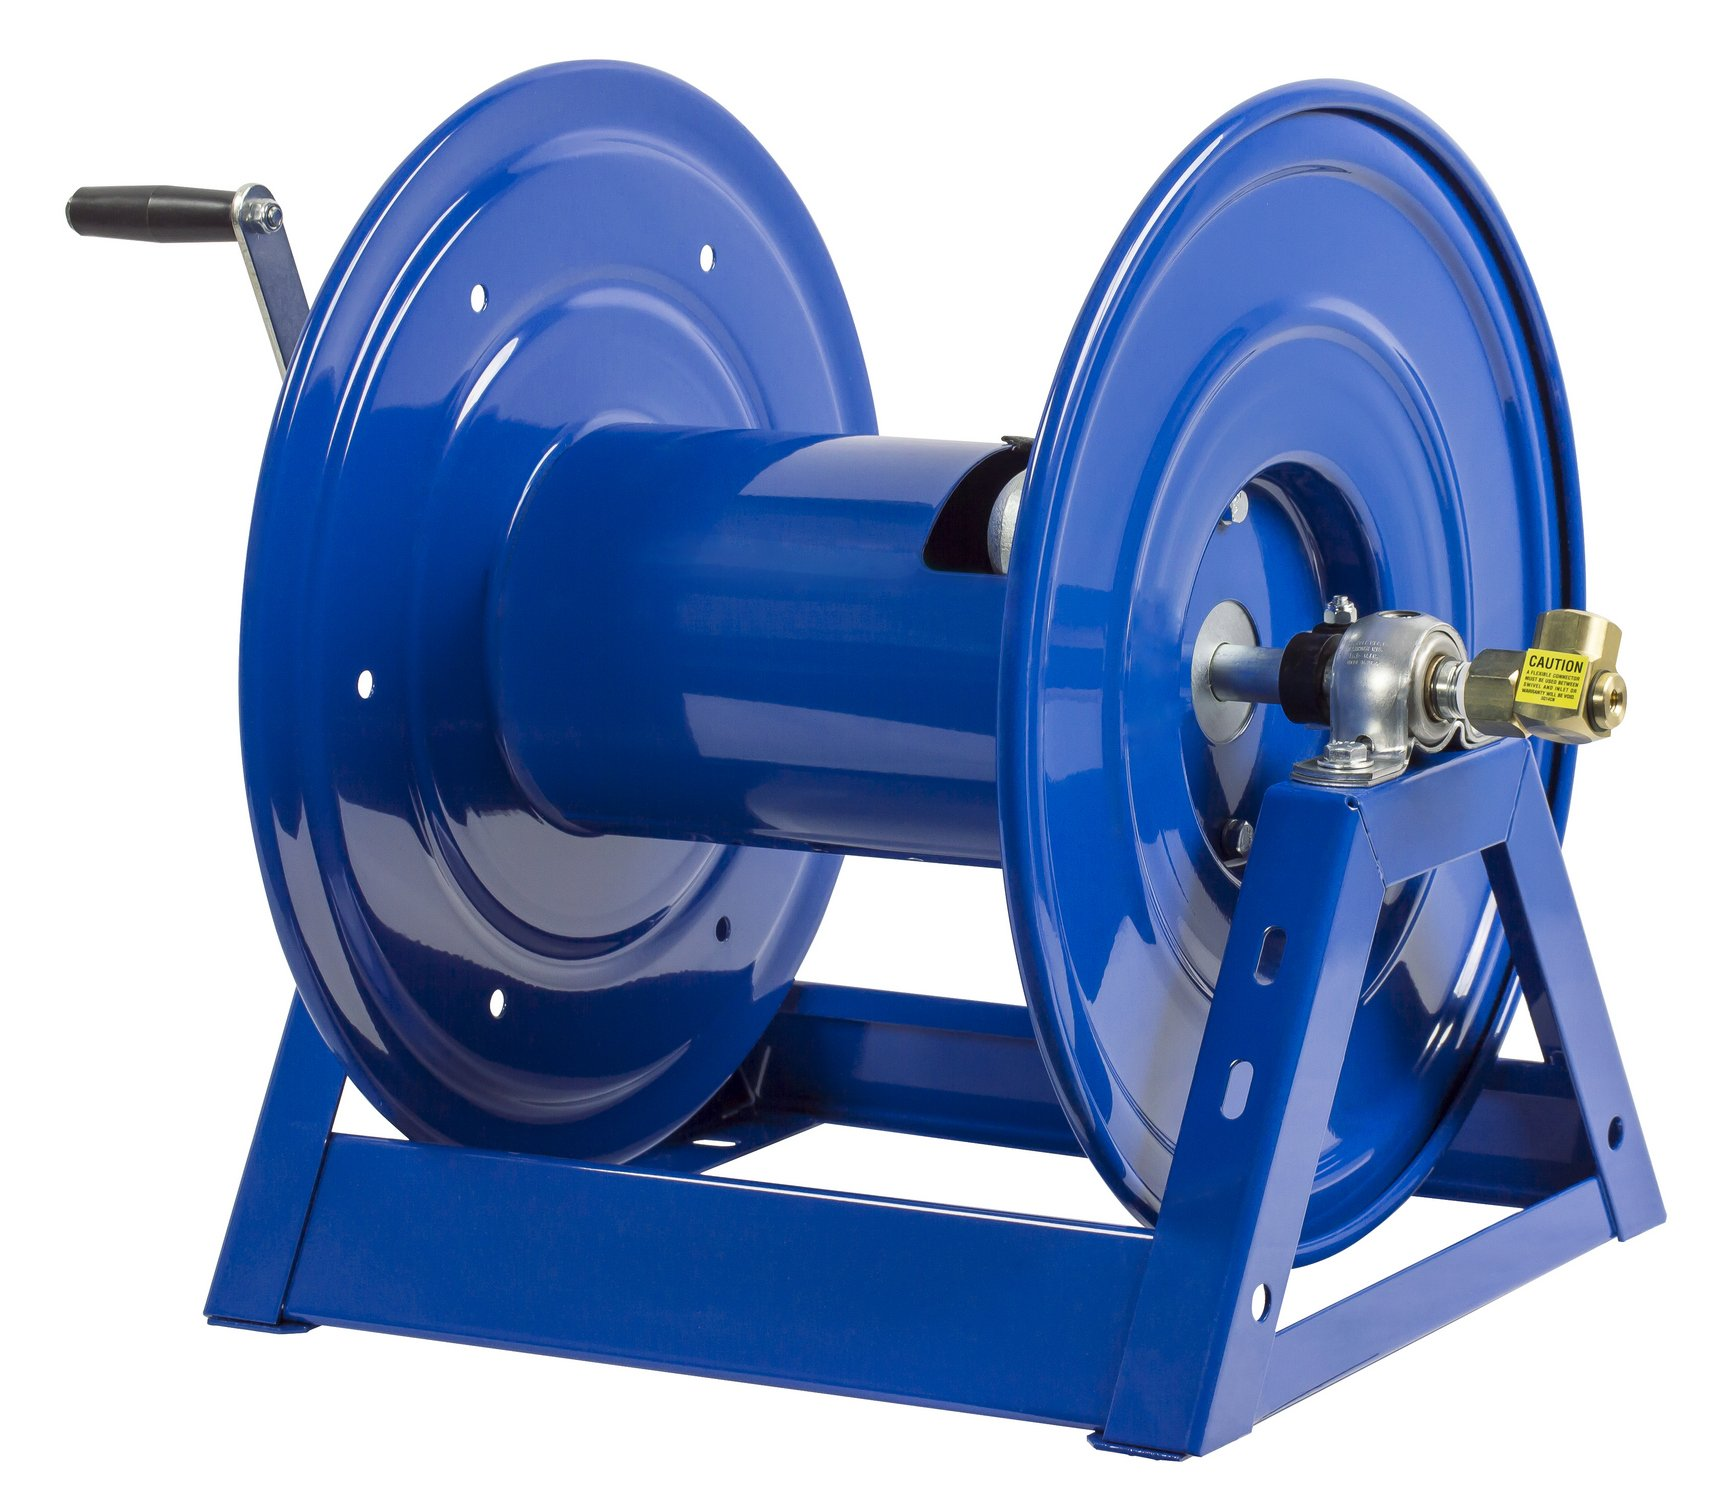 Coxreels 1125-4-100 Steel Hand Crank Hose Reel, 1/2'' Hose I.D., 100' Hose Capacity, 3,000 PSI, without Hose, Made in USA by Coxreels (Image #5)